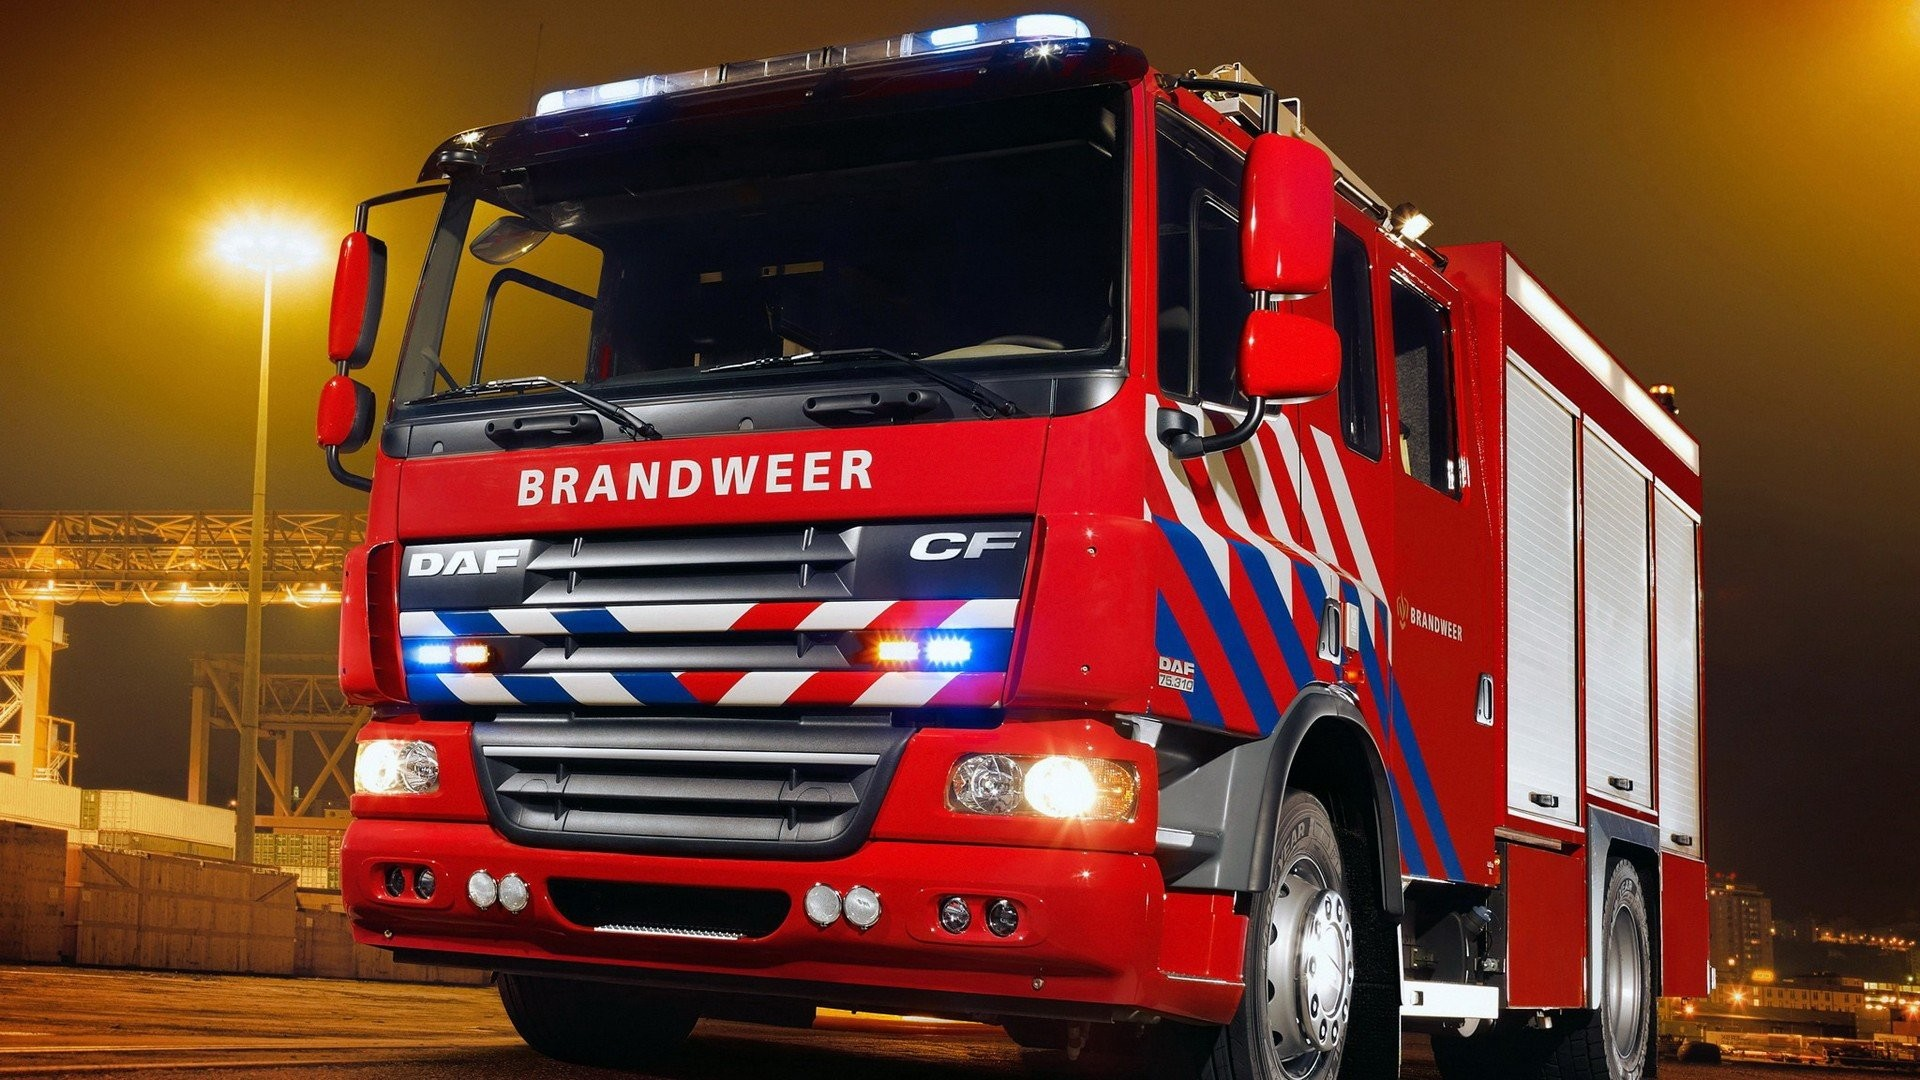 Res: 1920x1080, Cars firefighter vehicles wheels automobiles wallpaper |  | 260335  | WallpaperUP